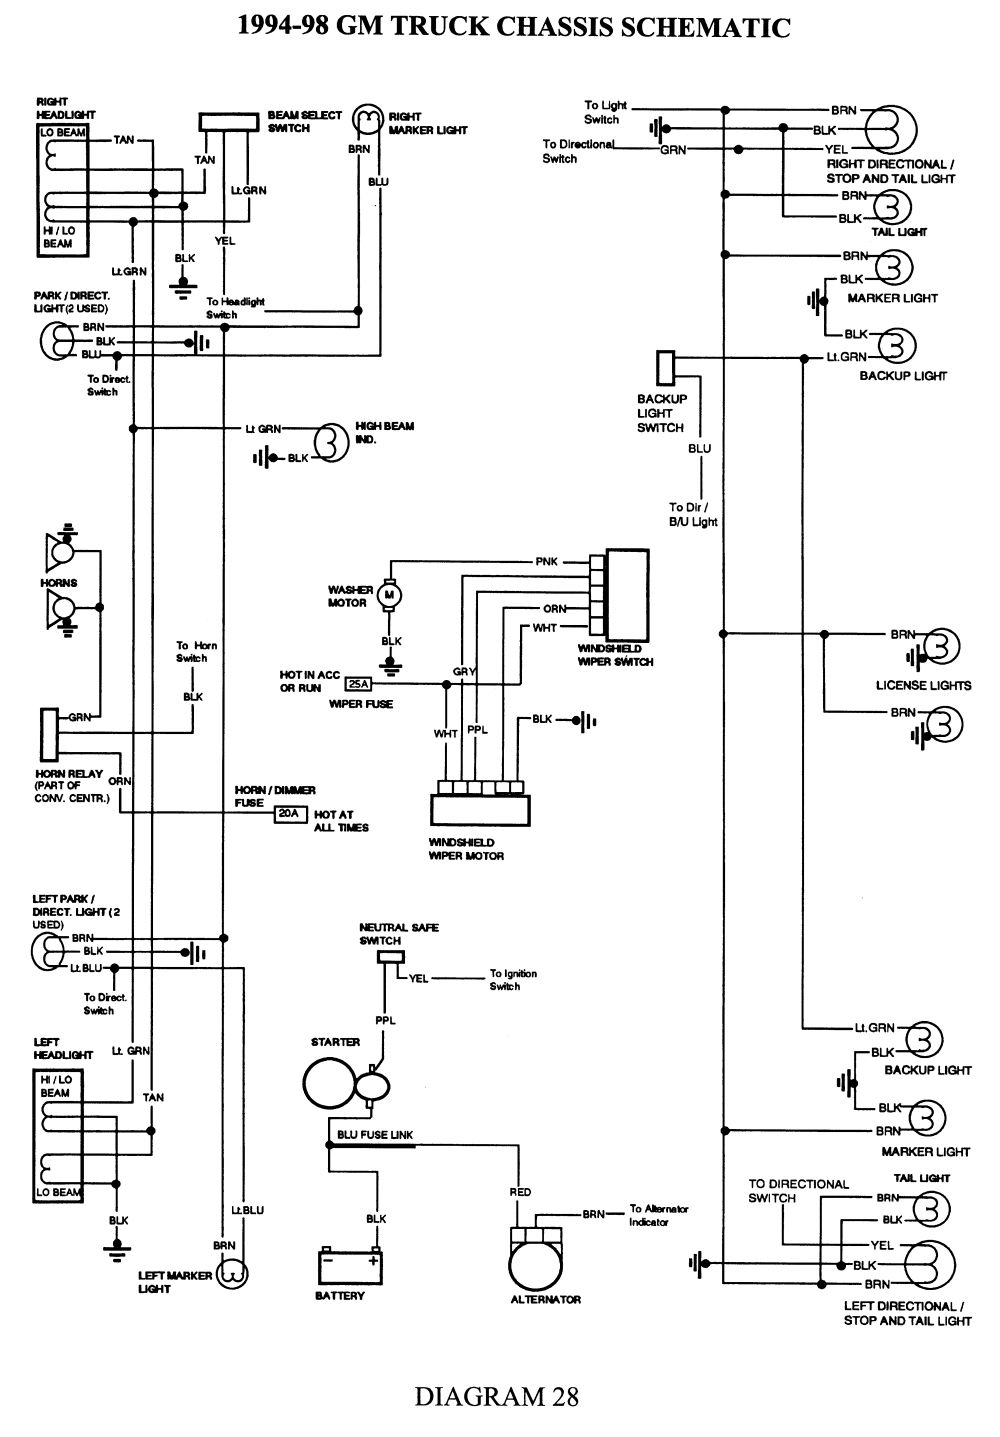 hight resolution of 1998 chevy truck wiring harness diagram simple wiring schema 98 gmc w4500 wiring diagram 1998